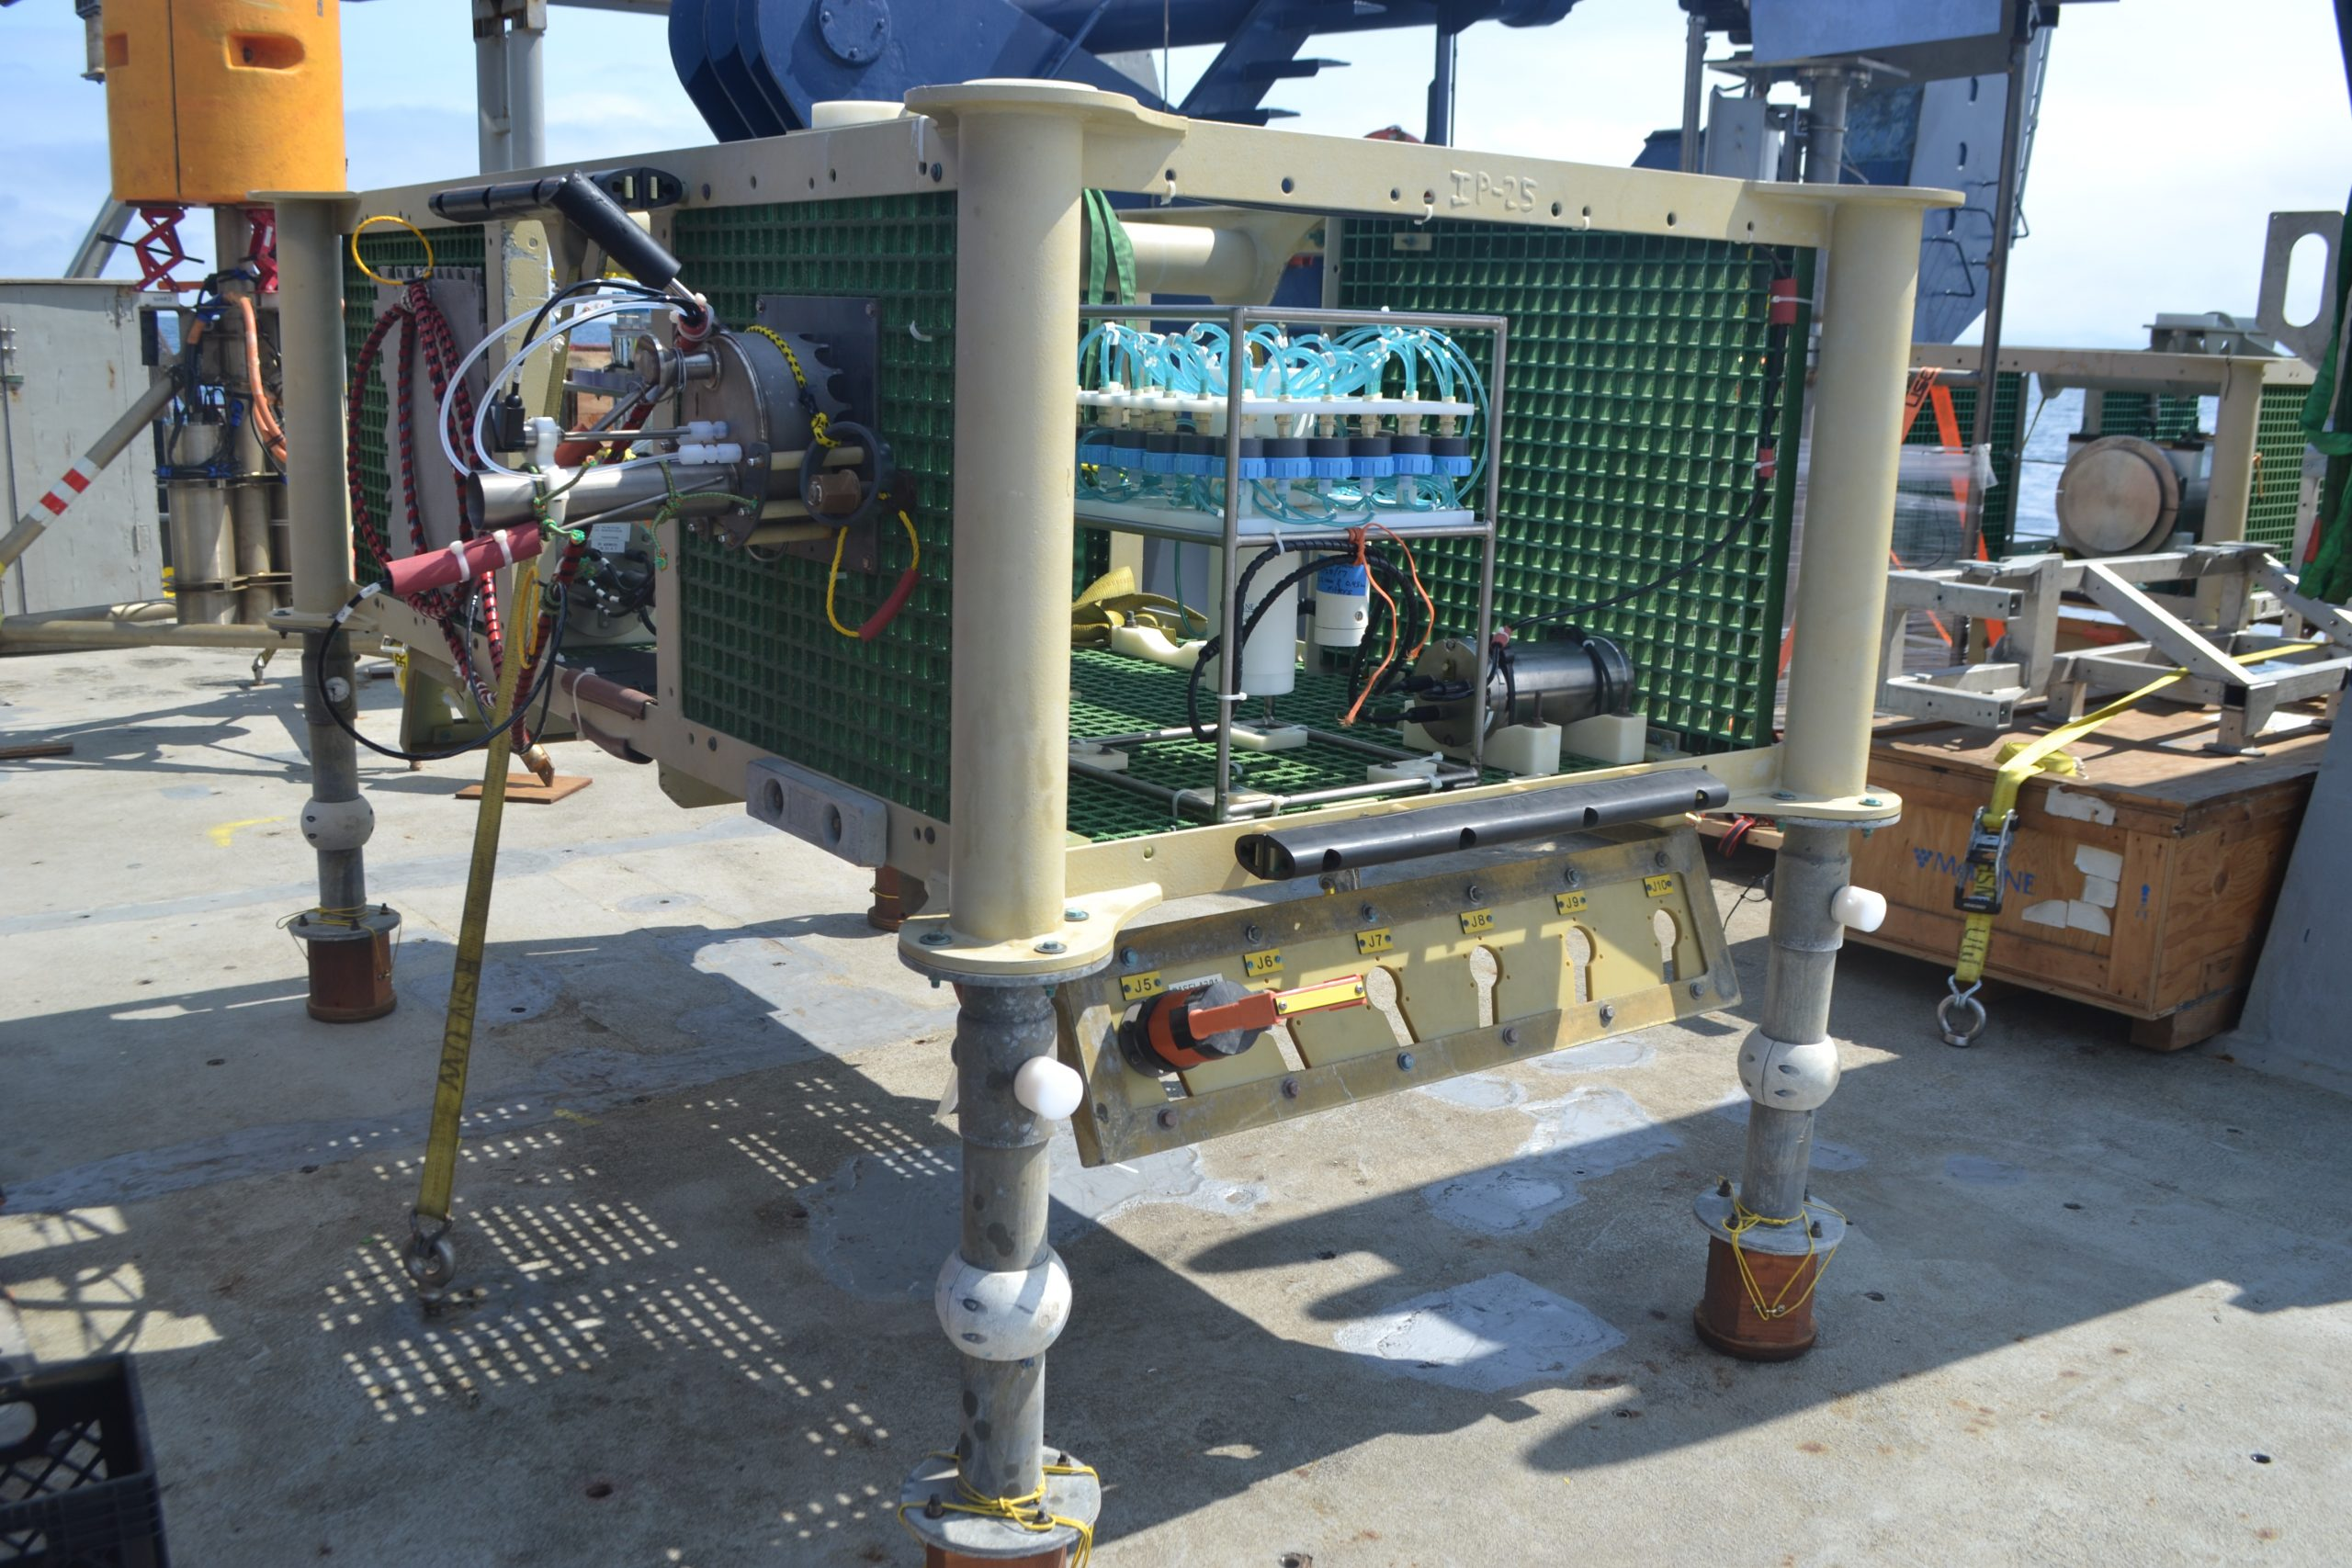 Pre-deployment deck photo of fluid- and microbial-DNA samplers RASFLA/PPSDNA, inside a seafloor-frame, before deployment in the International District Hydrothermal Field, on dive J2-1190 during VISIONS'19. The fluid sampler is attached to a saddle on the left side of the frame. Photo Credit: M. Elend; University of Washington; V19